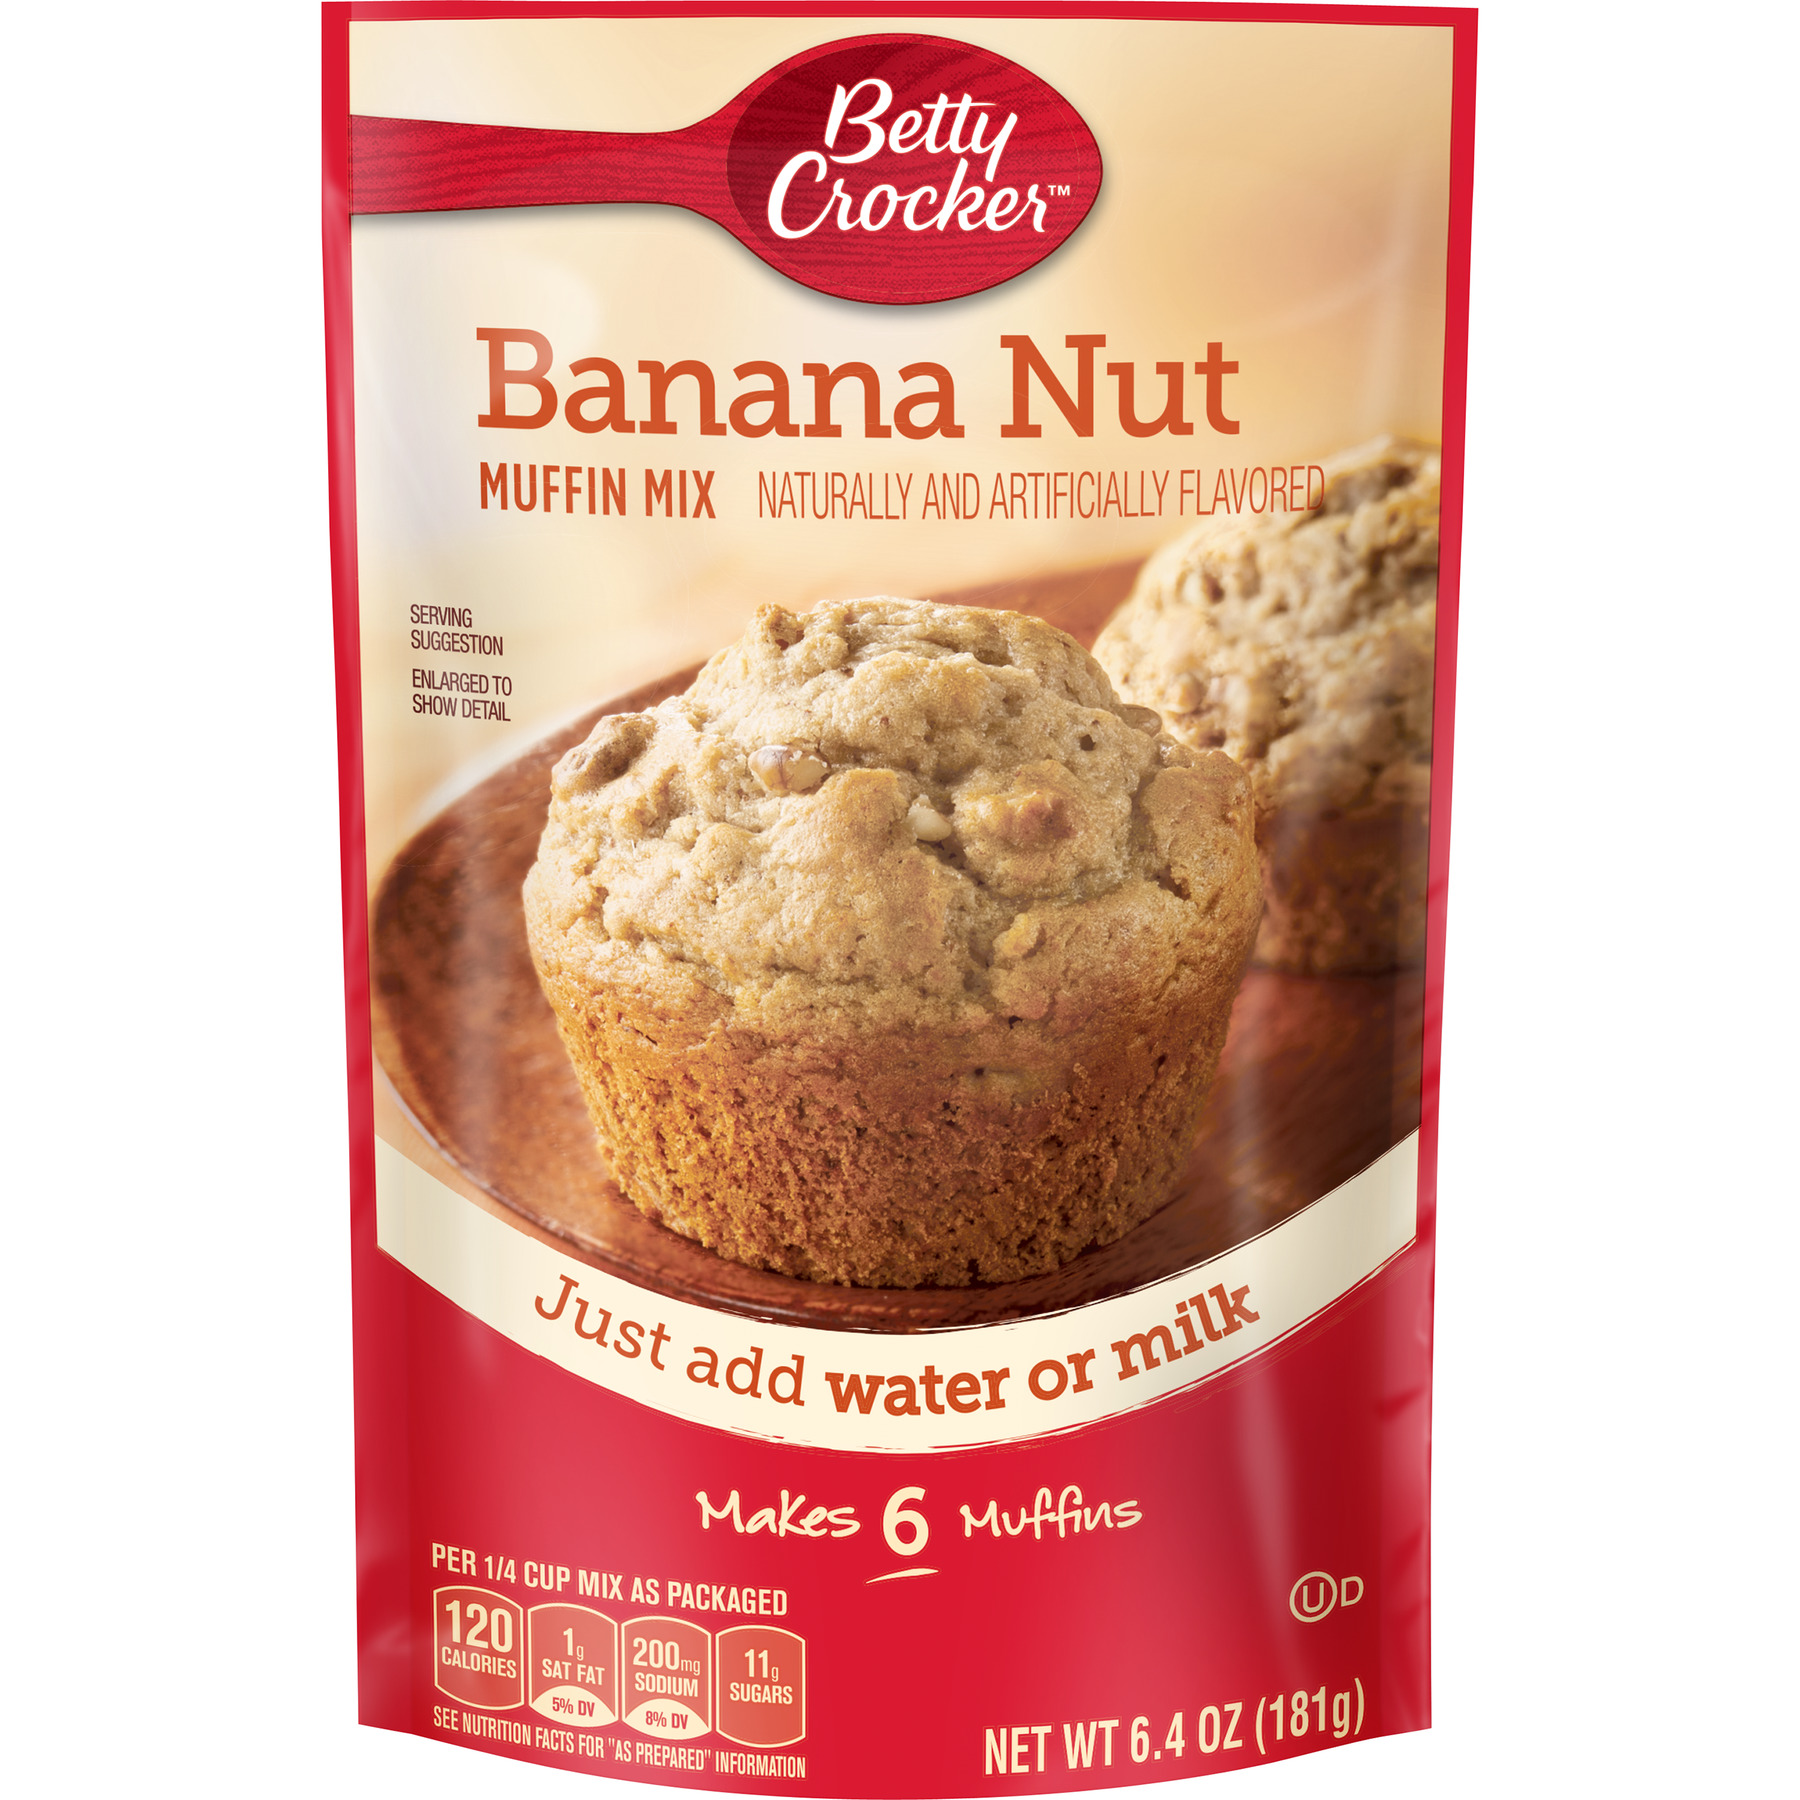 Betty Crocker Banana Nut Muffin Mix, 6.4 oz Box